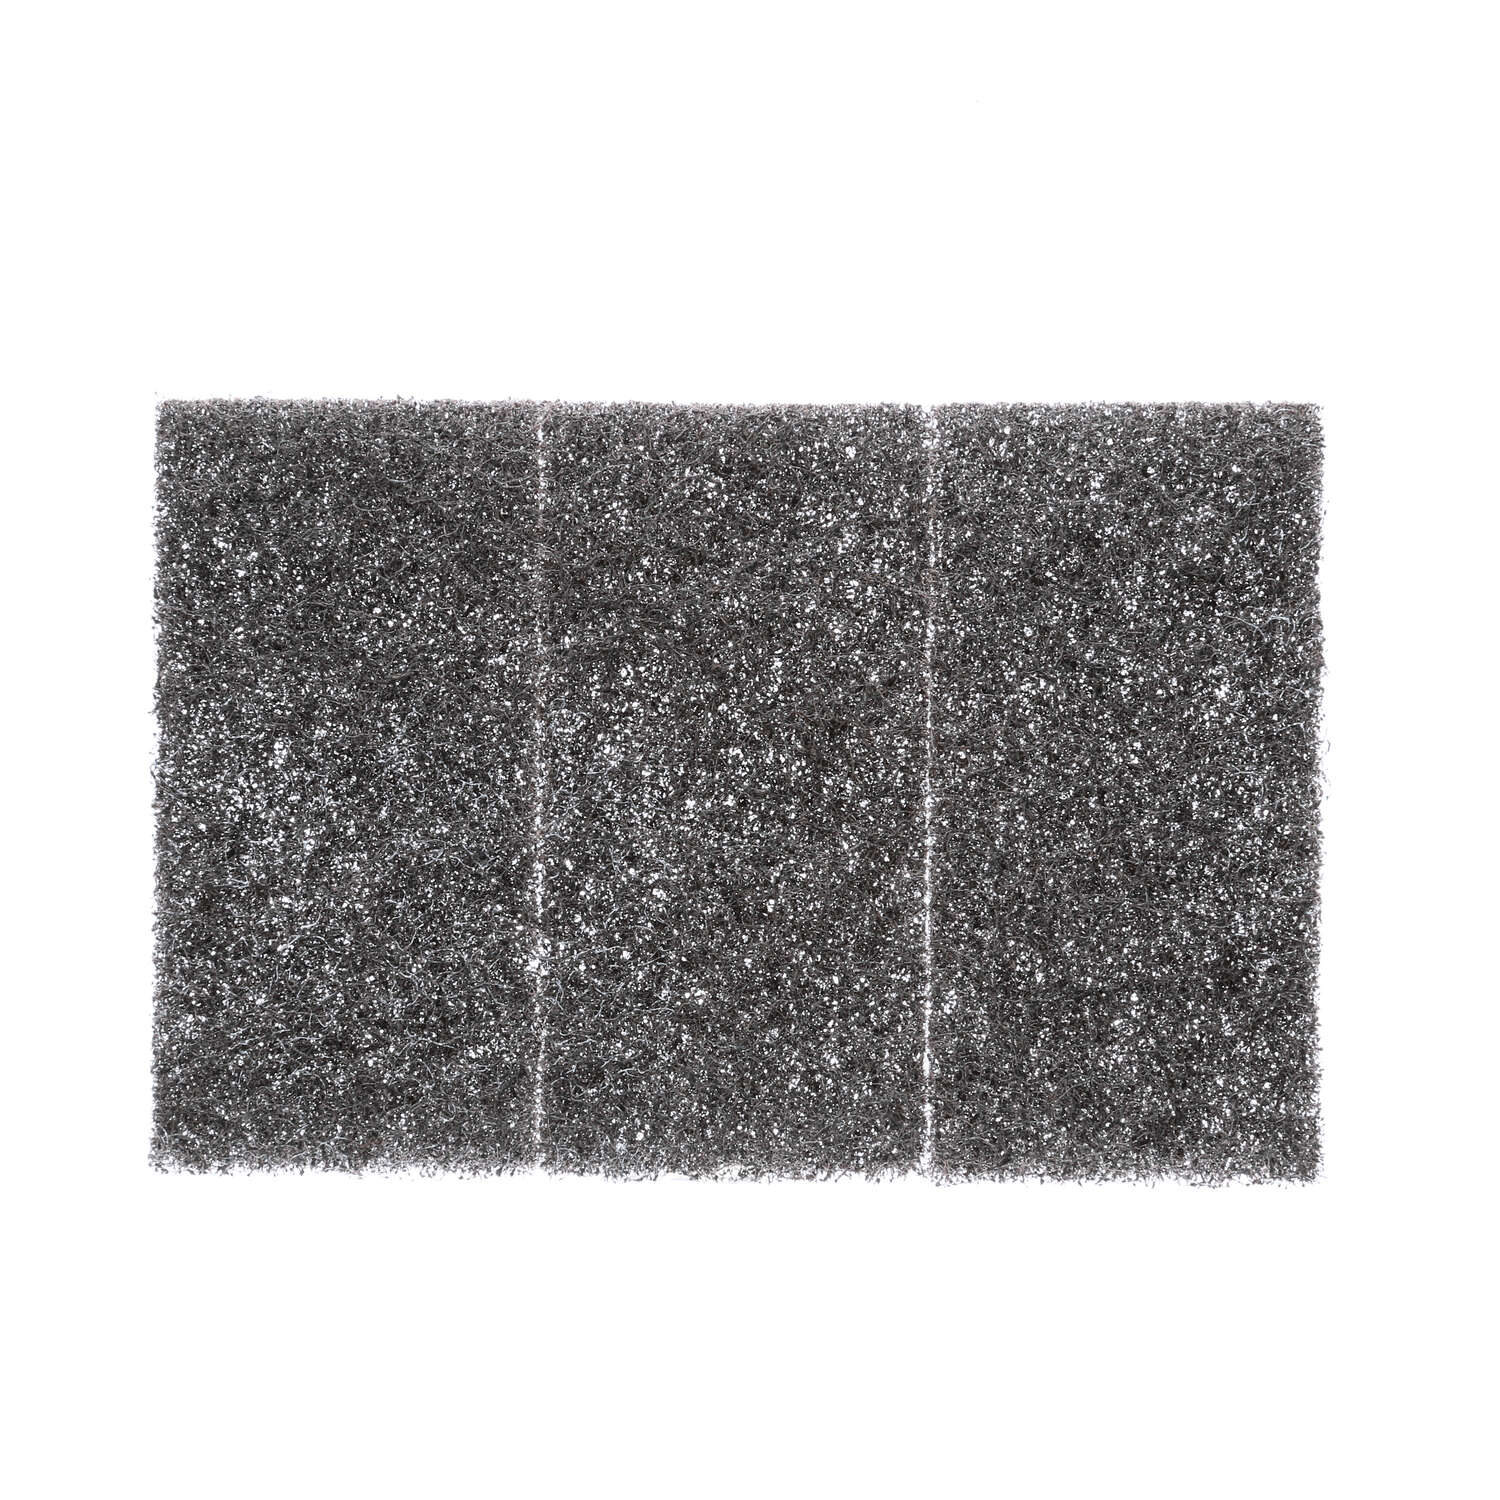 3M  2 Grade Medium  Steel Wool Pad  6 pk